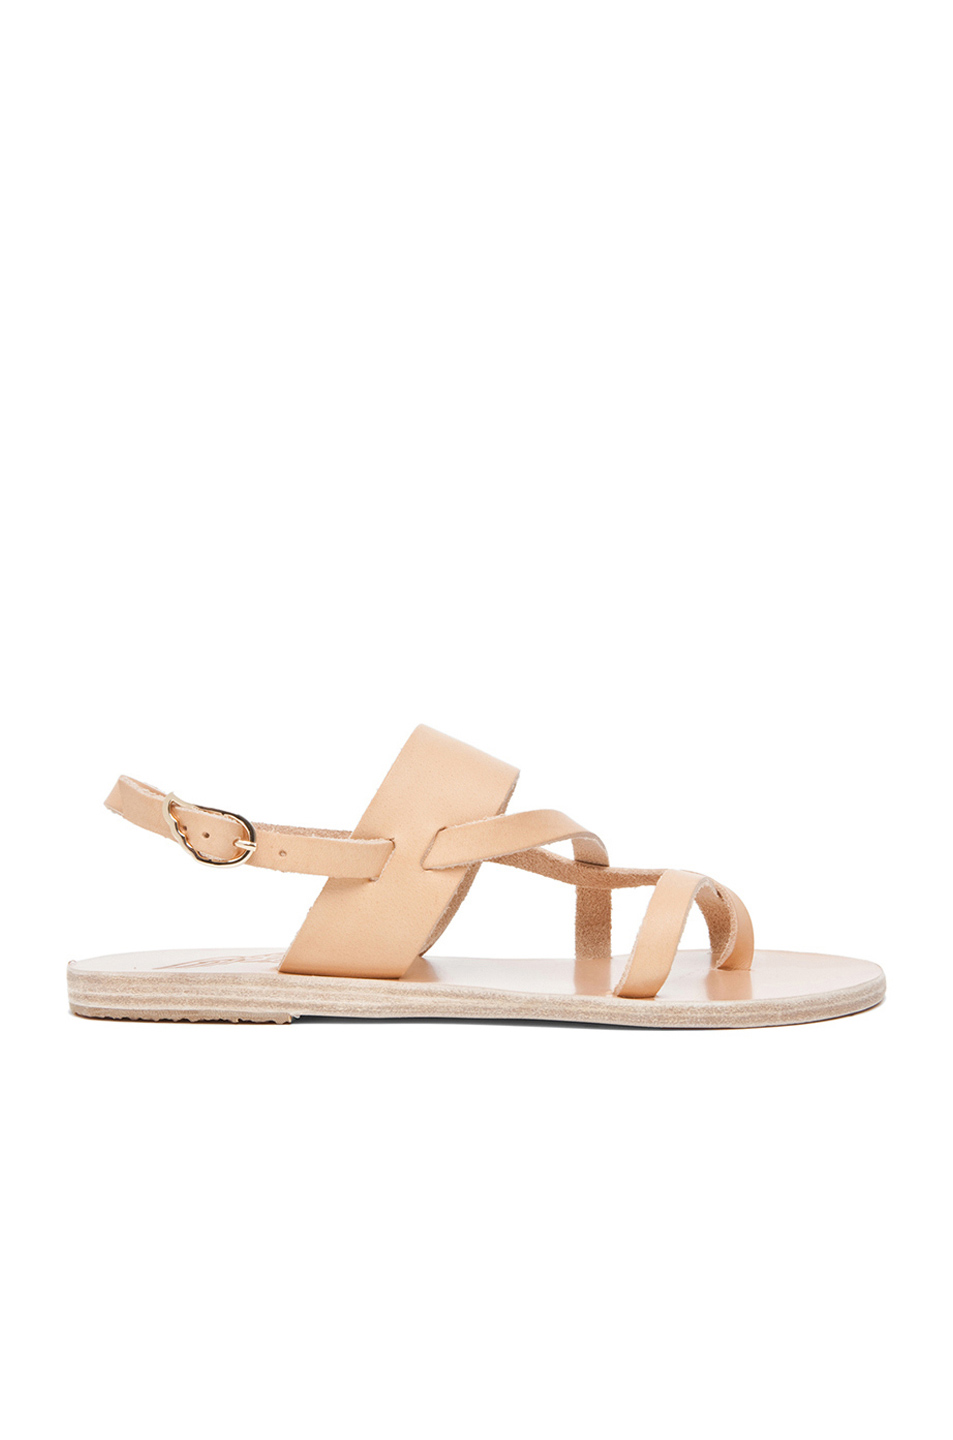 Ancient Greek Sandals Alethea Calfskin Leather Sandals In Neutrals. In Natural